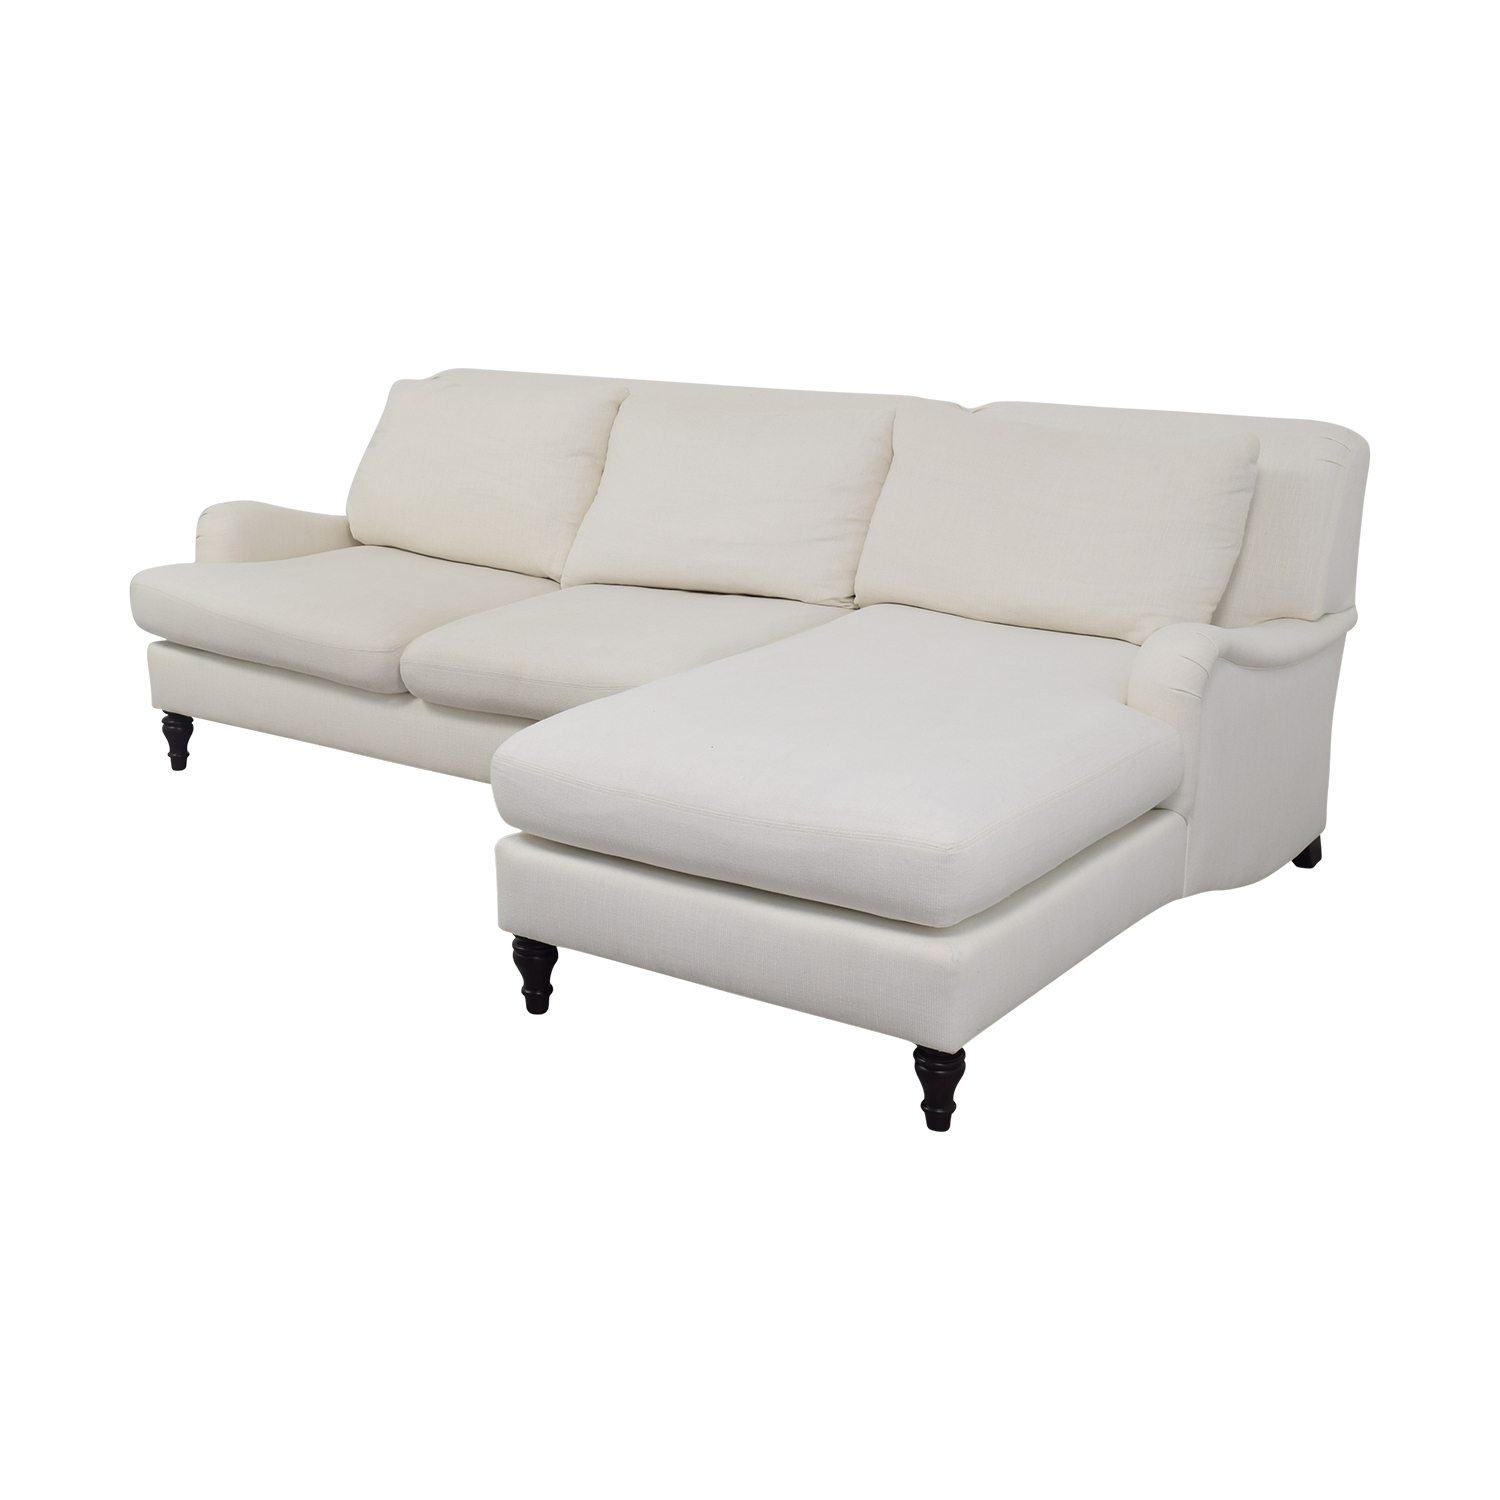 [%42% Off – Pottery Barn Pottery Barn Carlisle White Chaise Pertaining To Well Liked Pottery Barn Chaises|Pottery Barn Chaises Inside Most Recent 42% Off – Pottery Barn Pottery Barn Carlisle White Chaise|Newest Pottery Barn Chaises In 42% Off – Pottery Barn Pottery Barn Carlisle White Chaise|Favorite 42% Off – Pottery Barn Pottery Barn Carlisle White Chaise Pertaining To Pottery Barn Chaises%] (View 15 of 15)